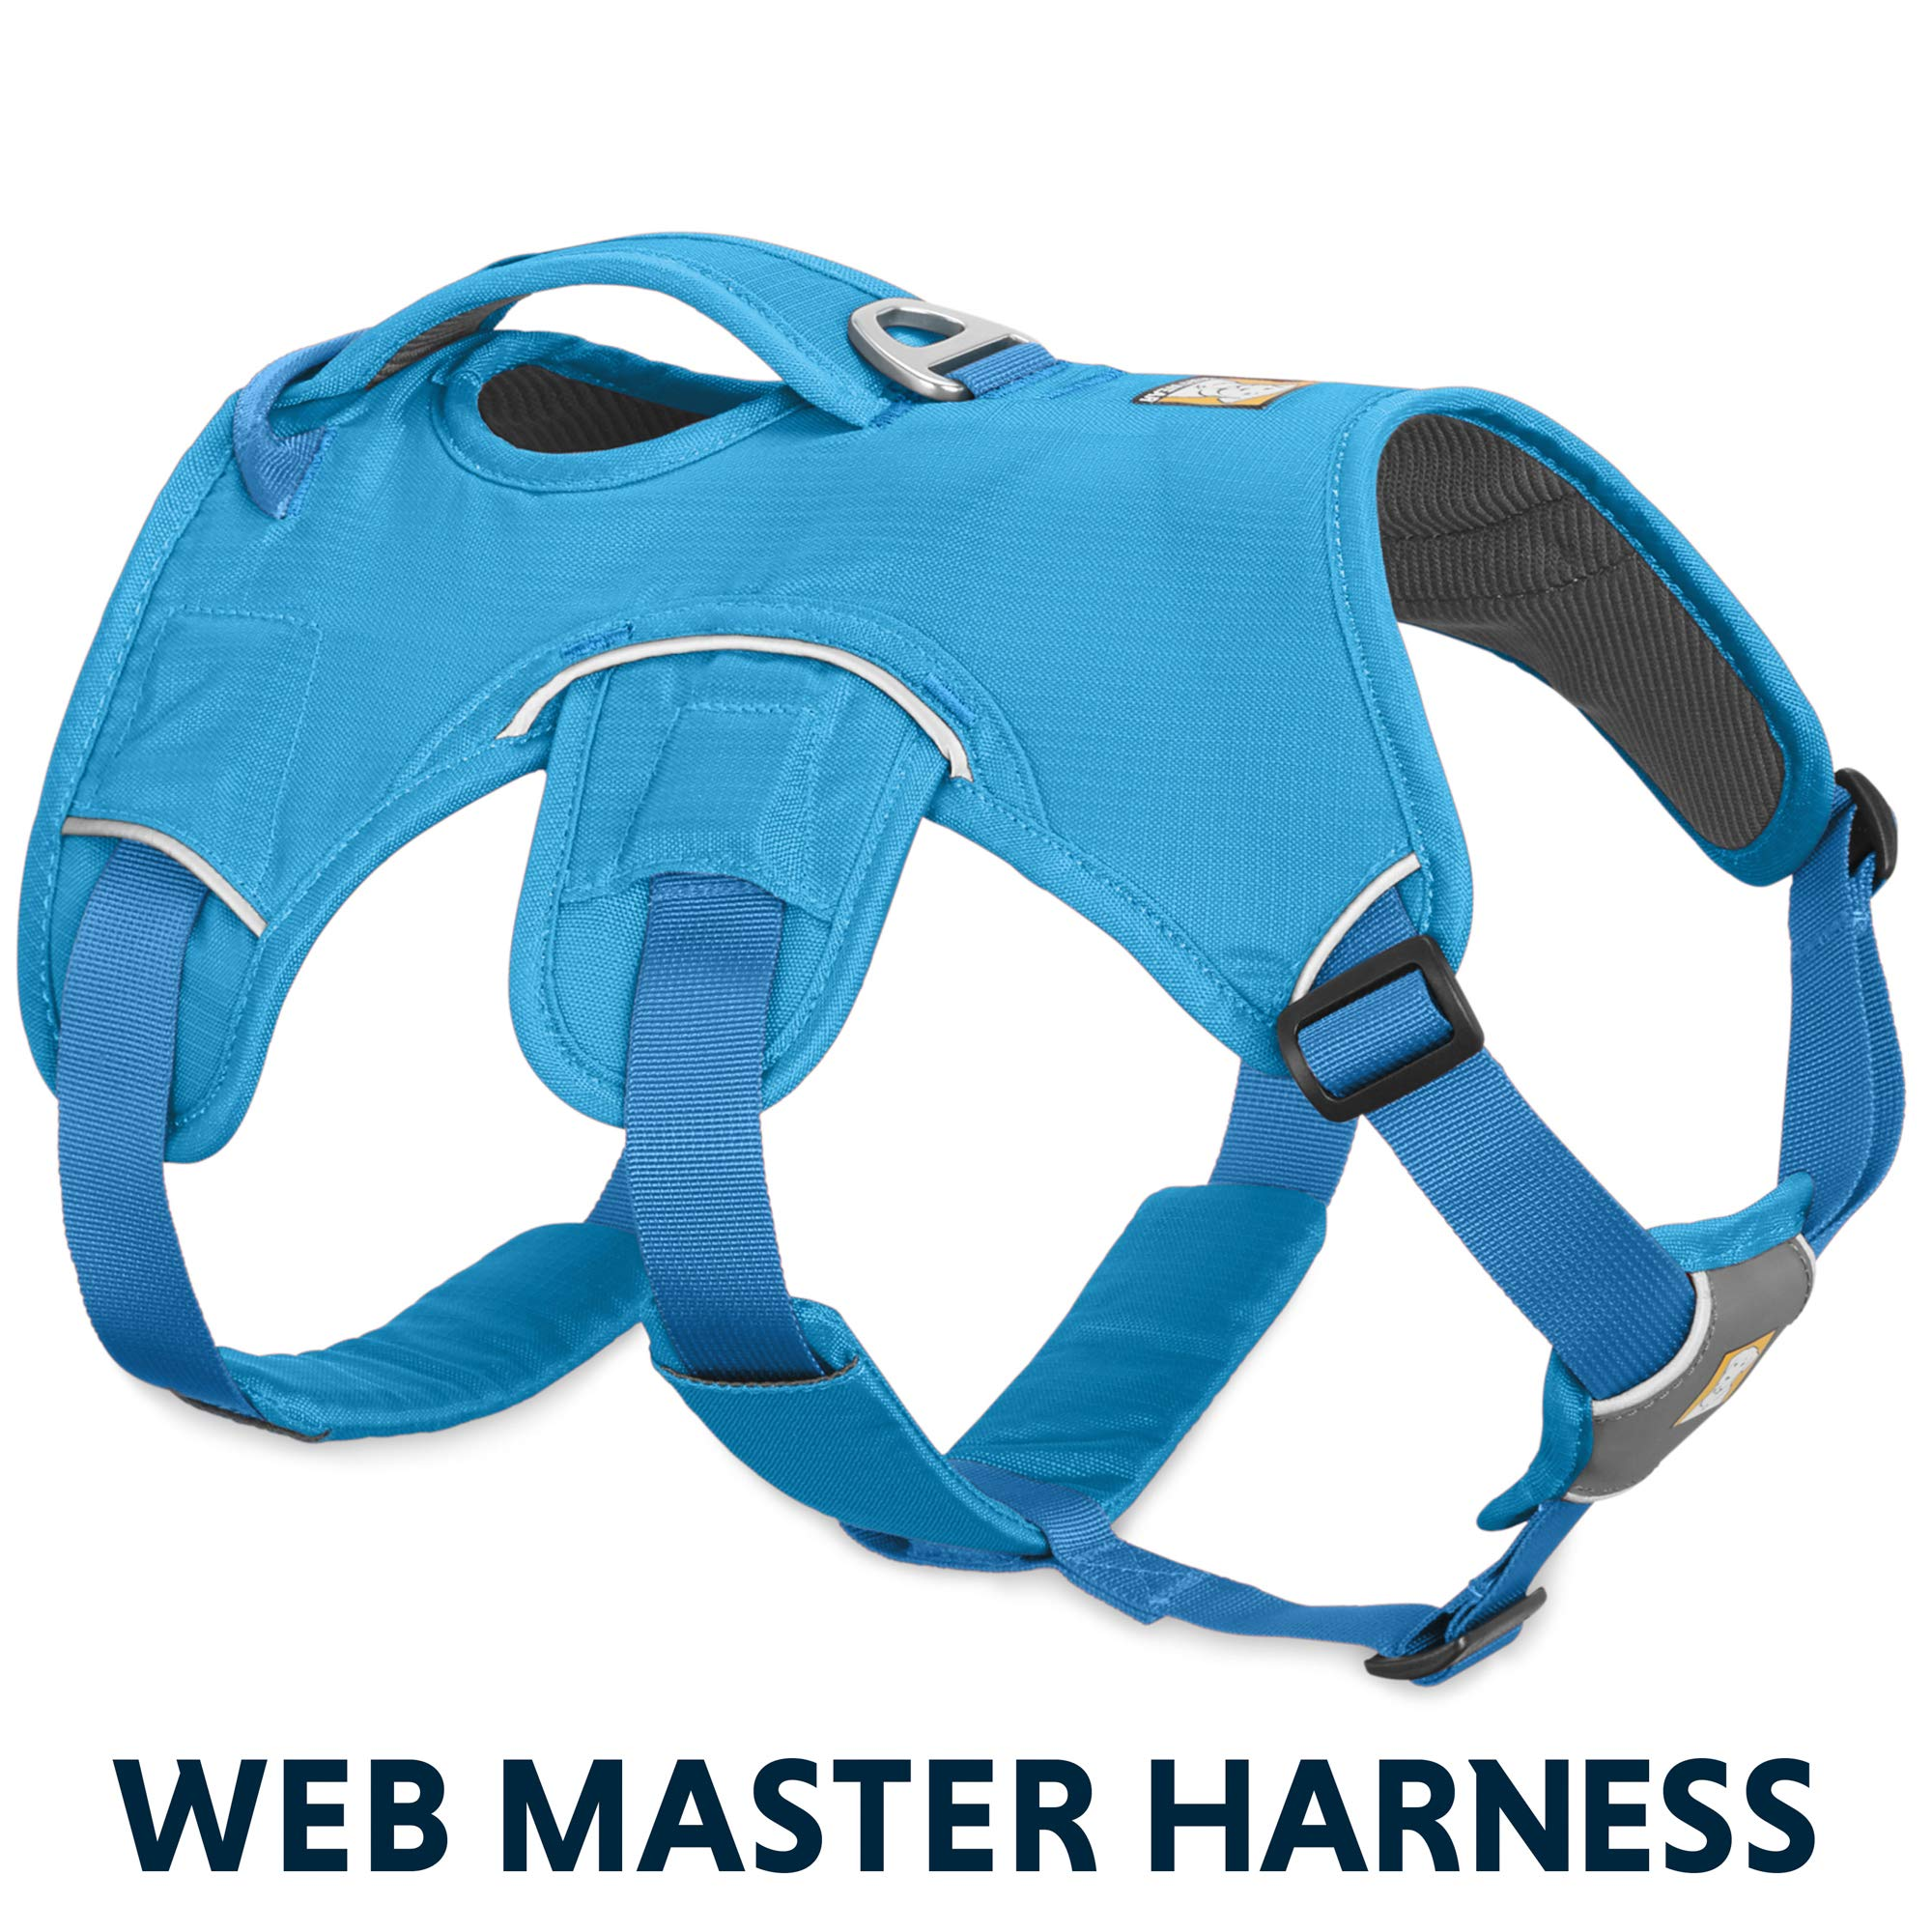 RUFFWEAR - Web Master, Multi-Use Support Dog Harness, Hiking and Trail Running, Service and Working, Everyday Wear, Blue Dusk, Large/X-Large